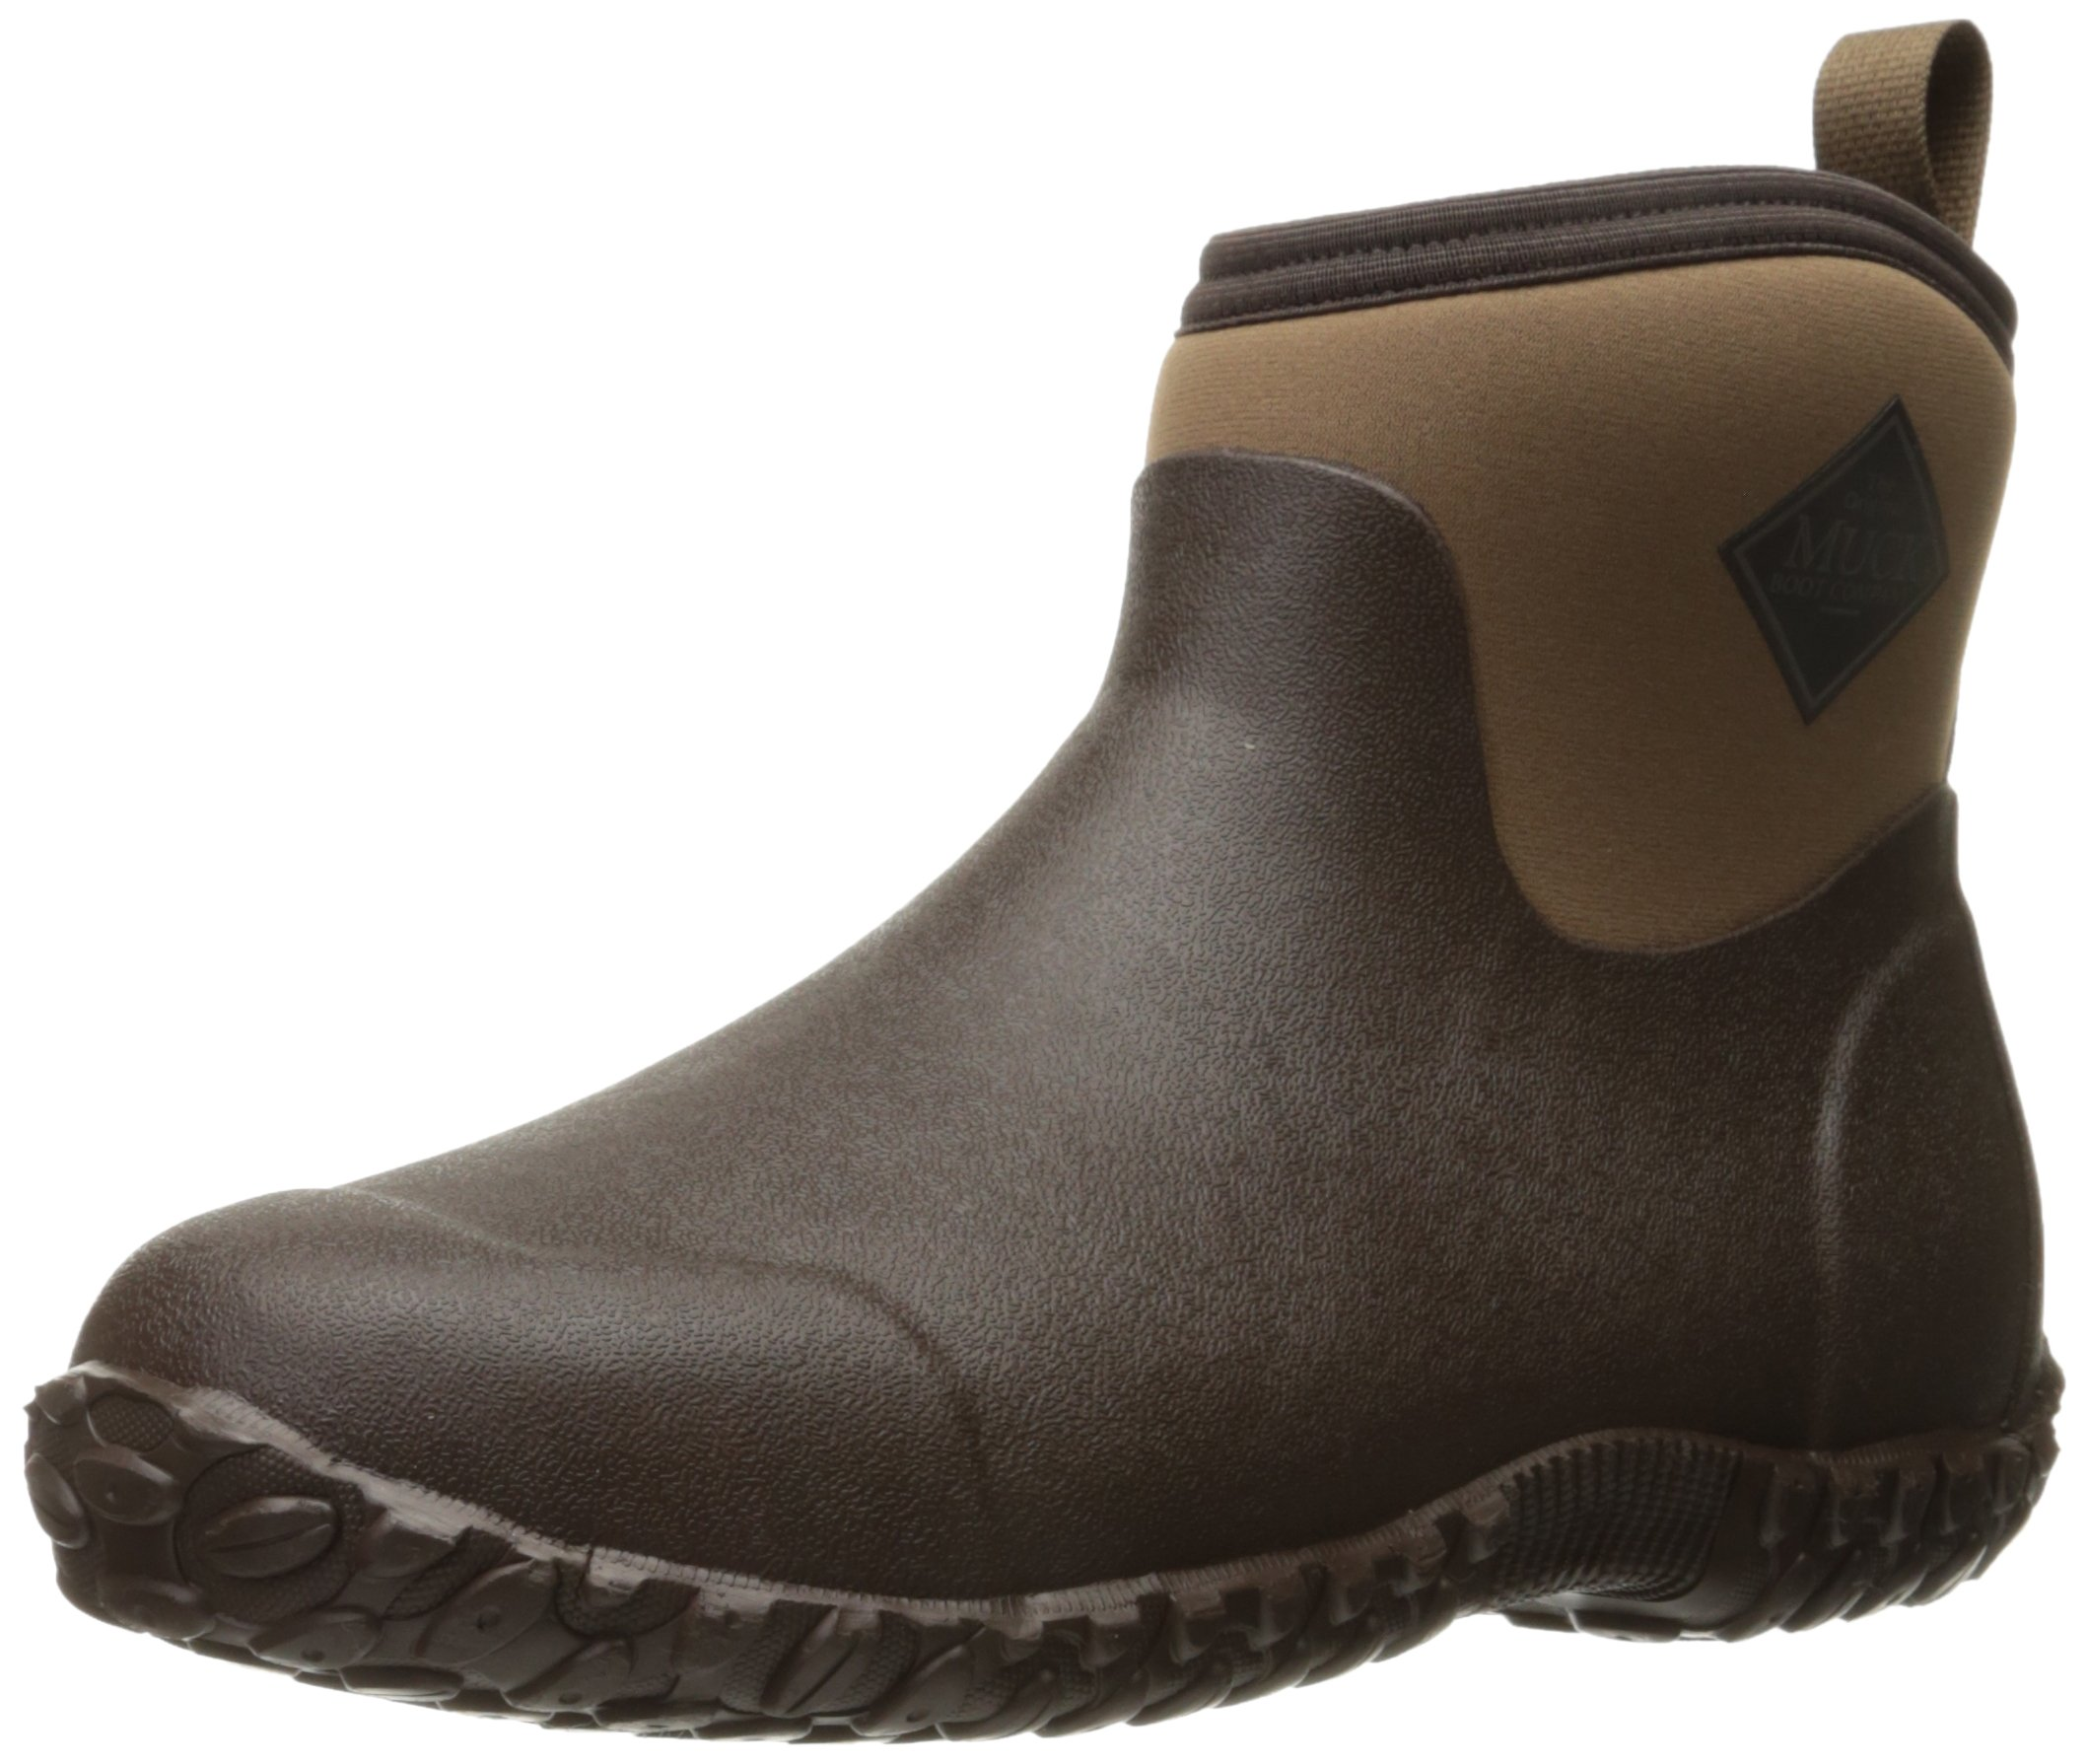 Muckster ll Ankle-Height Men's Rubber Garden Boots,Black/Otter,7 M US by Muck Boot